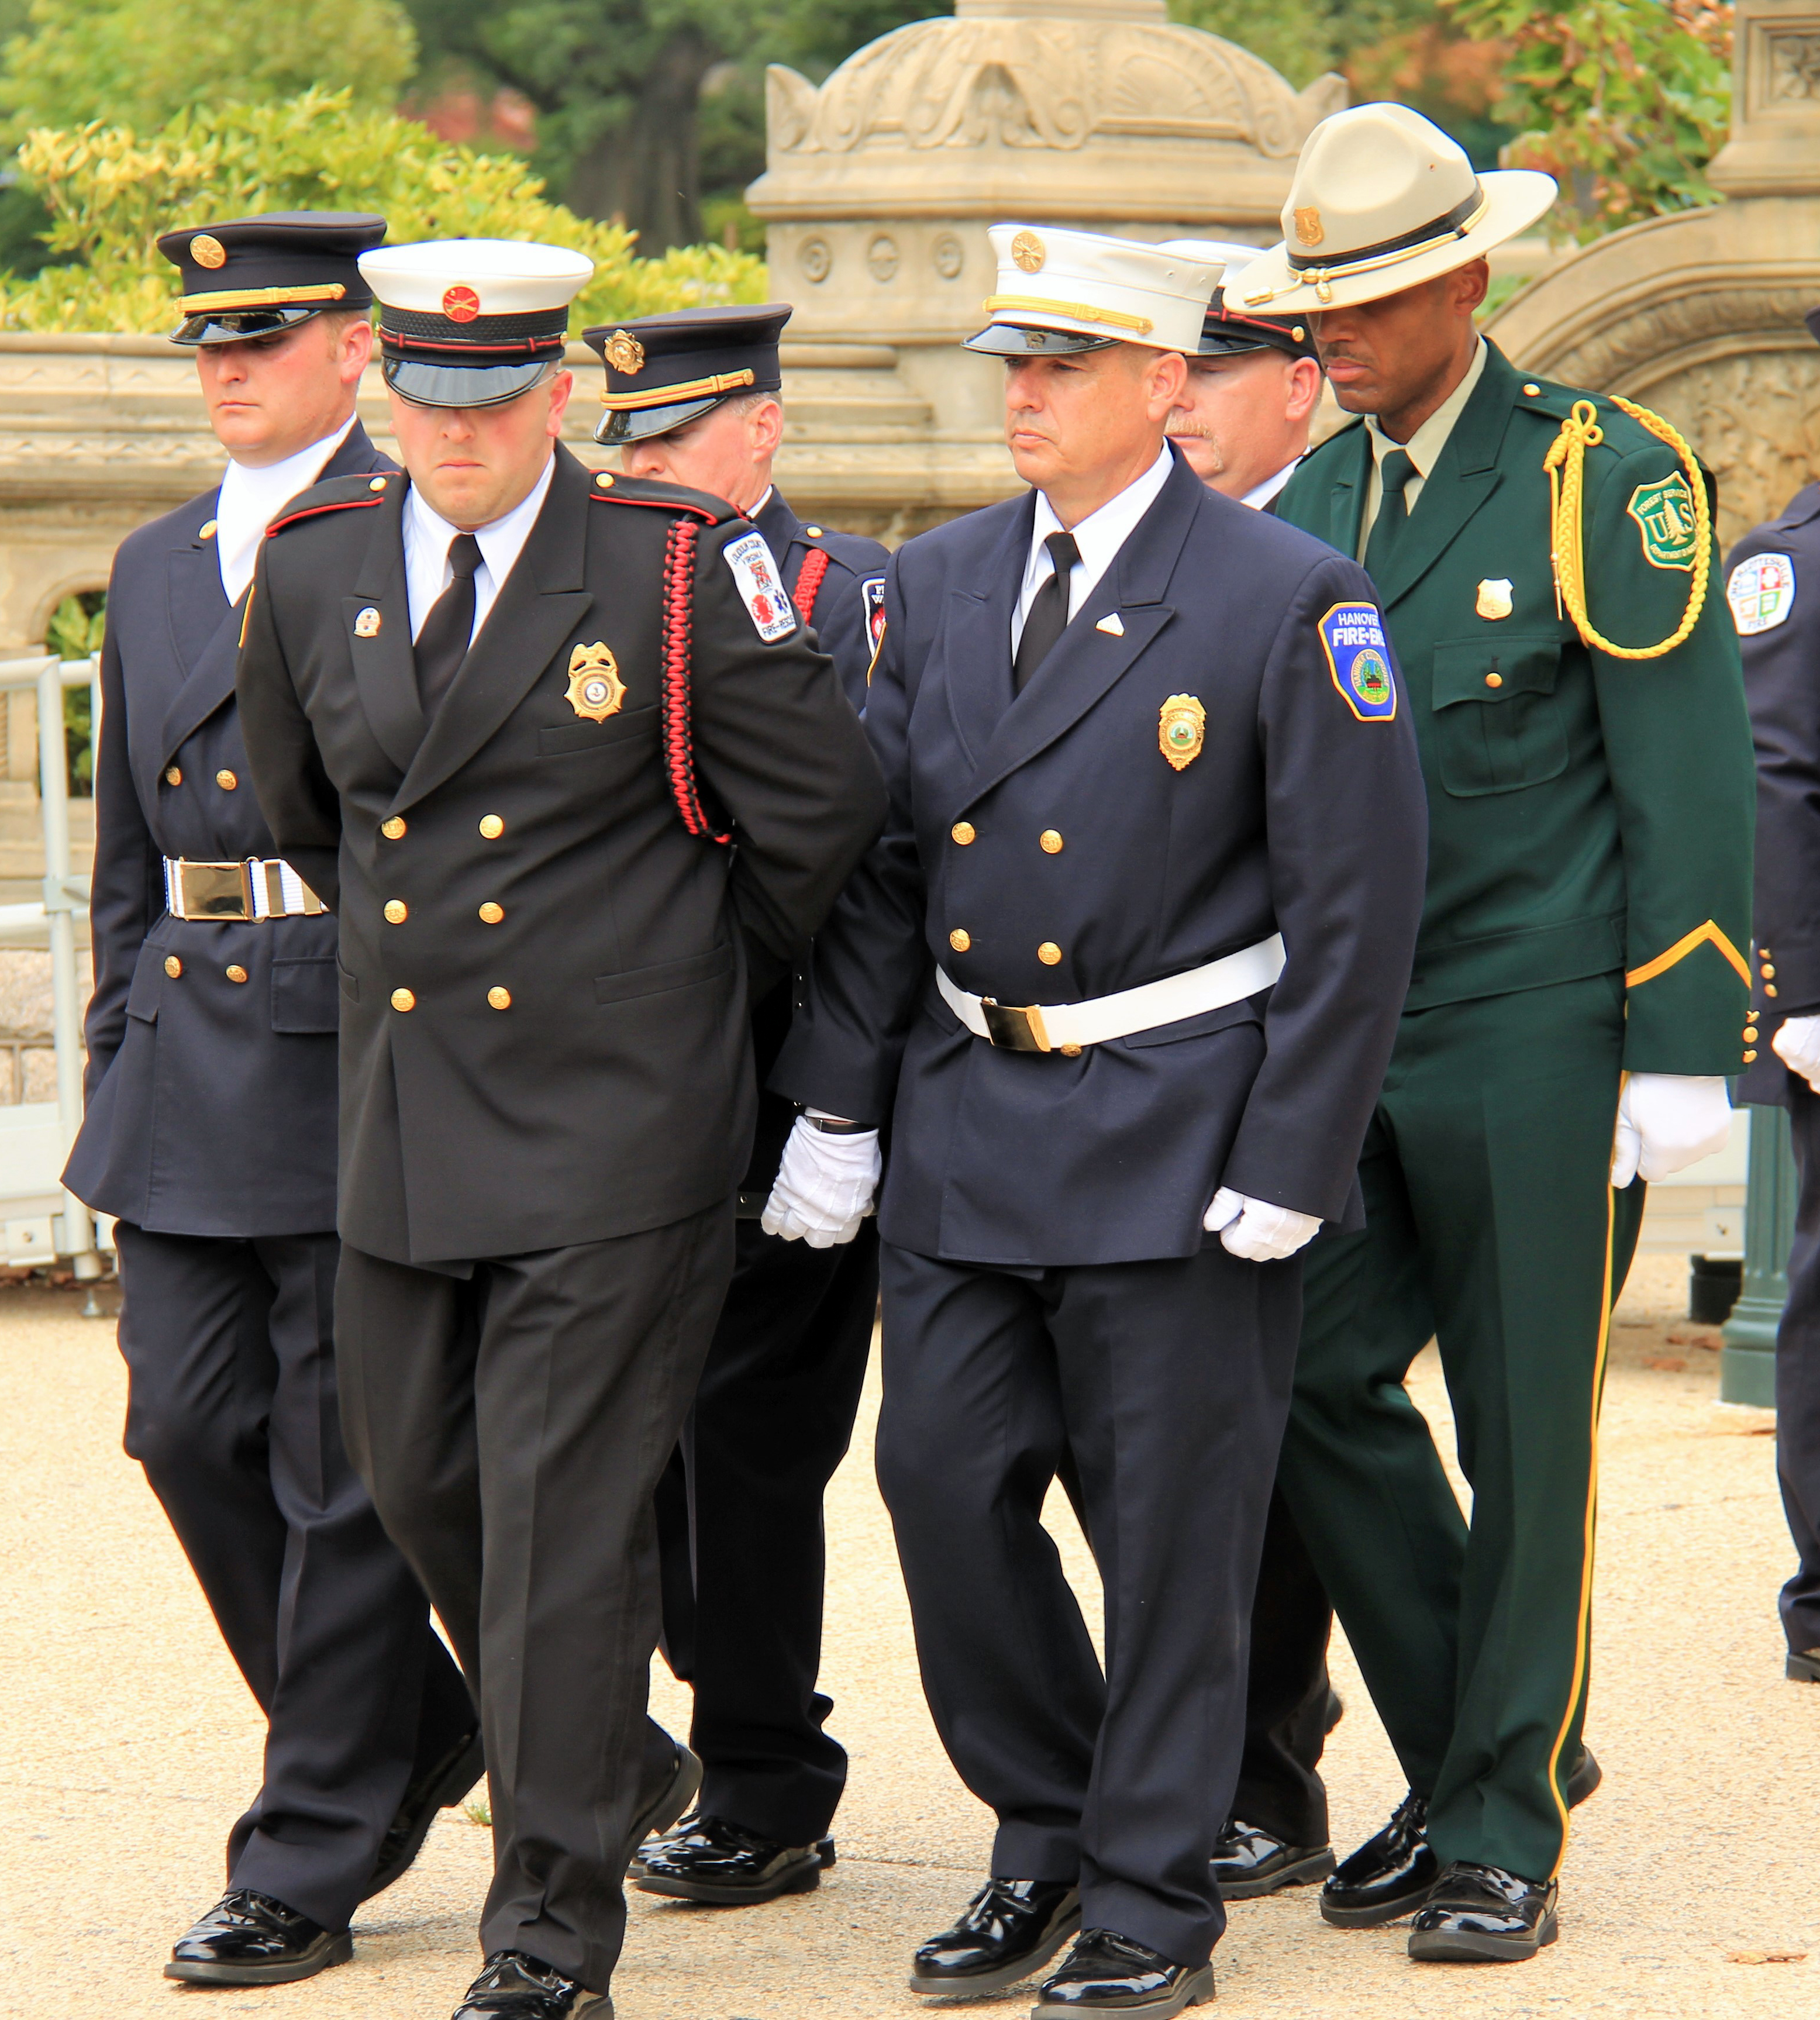 Men in uniforms of various agencies standing outside at the National Fallen Firefighter Foundation Memorial.